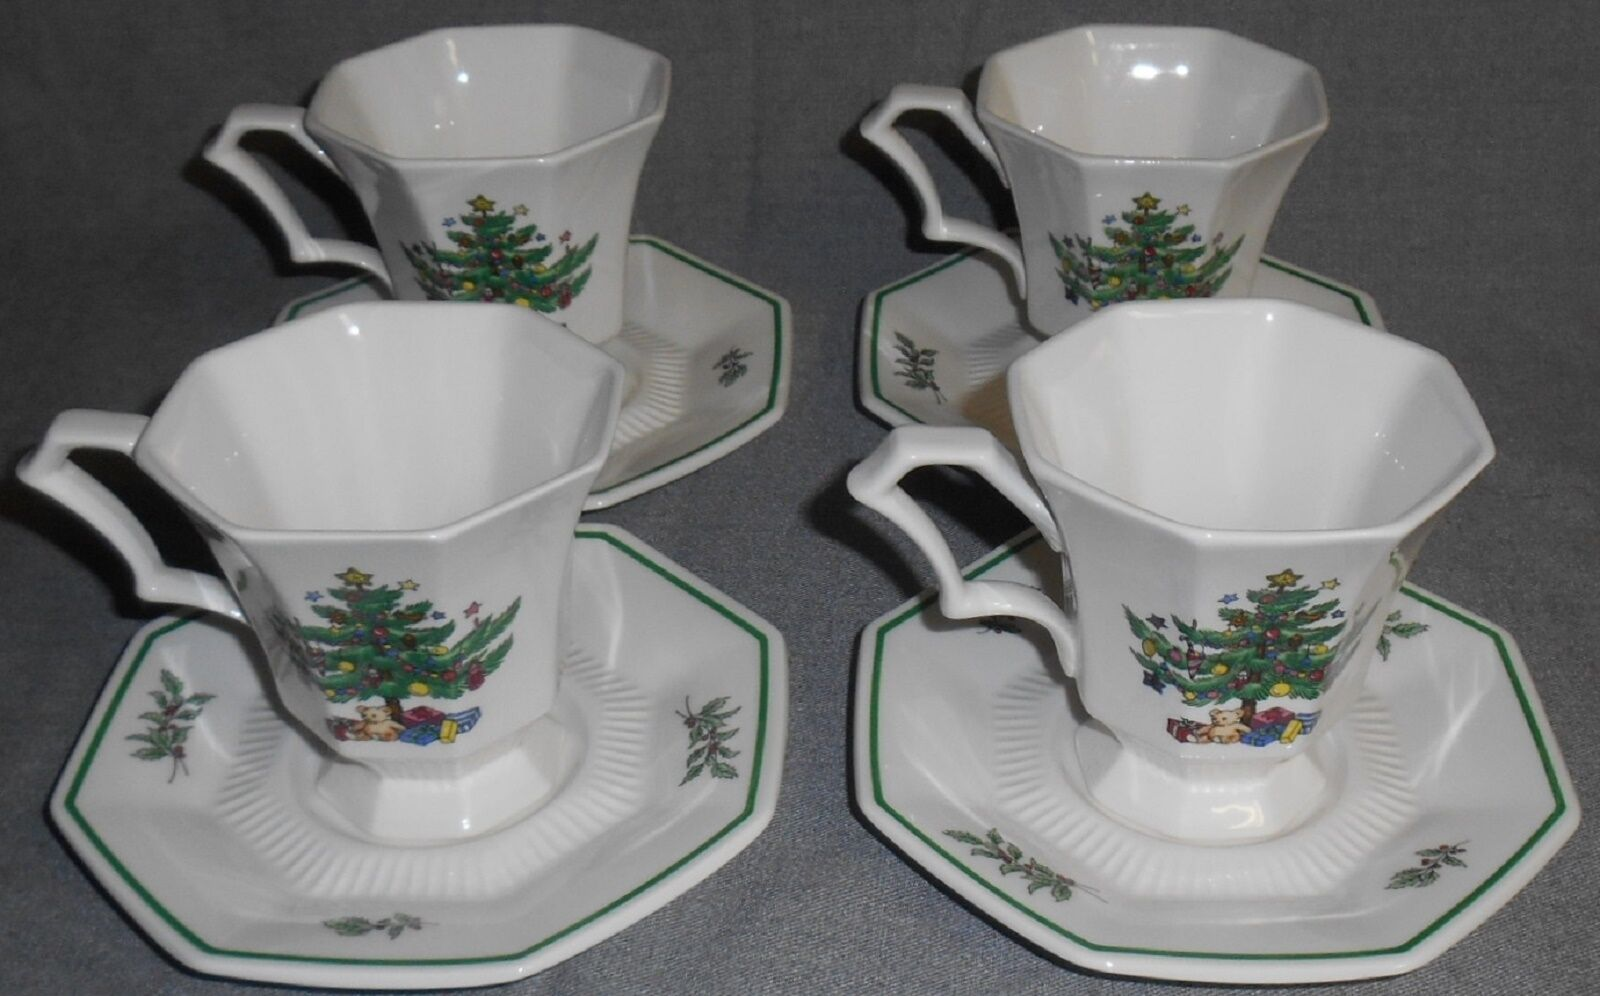 Primary image for Set (4) Nikko CHRISTMASTIME PATTERN Cups and Saucers MADE IN JAPAN